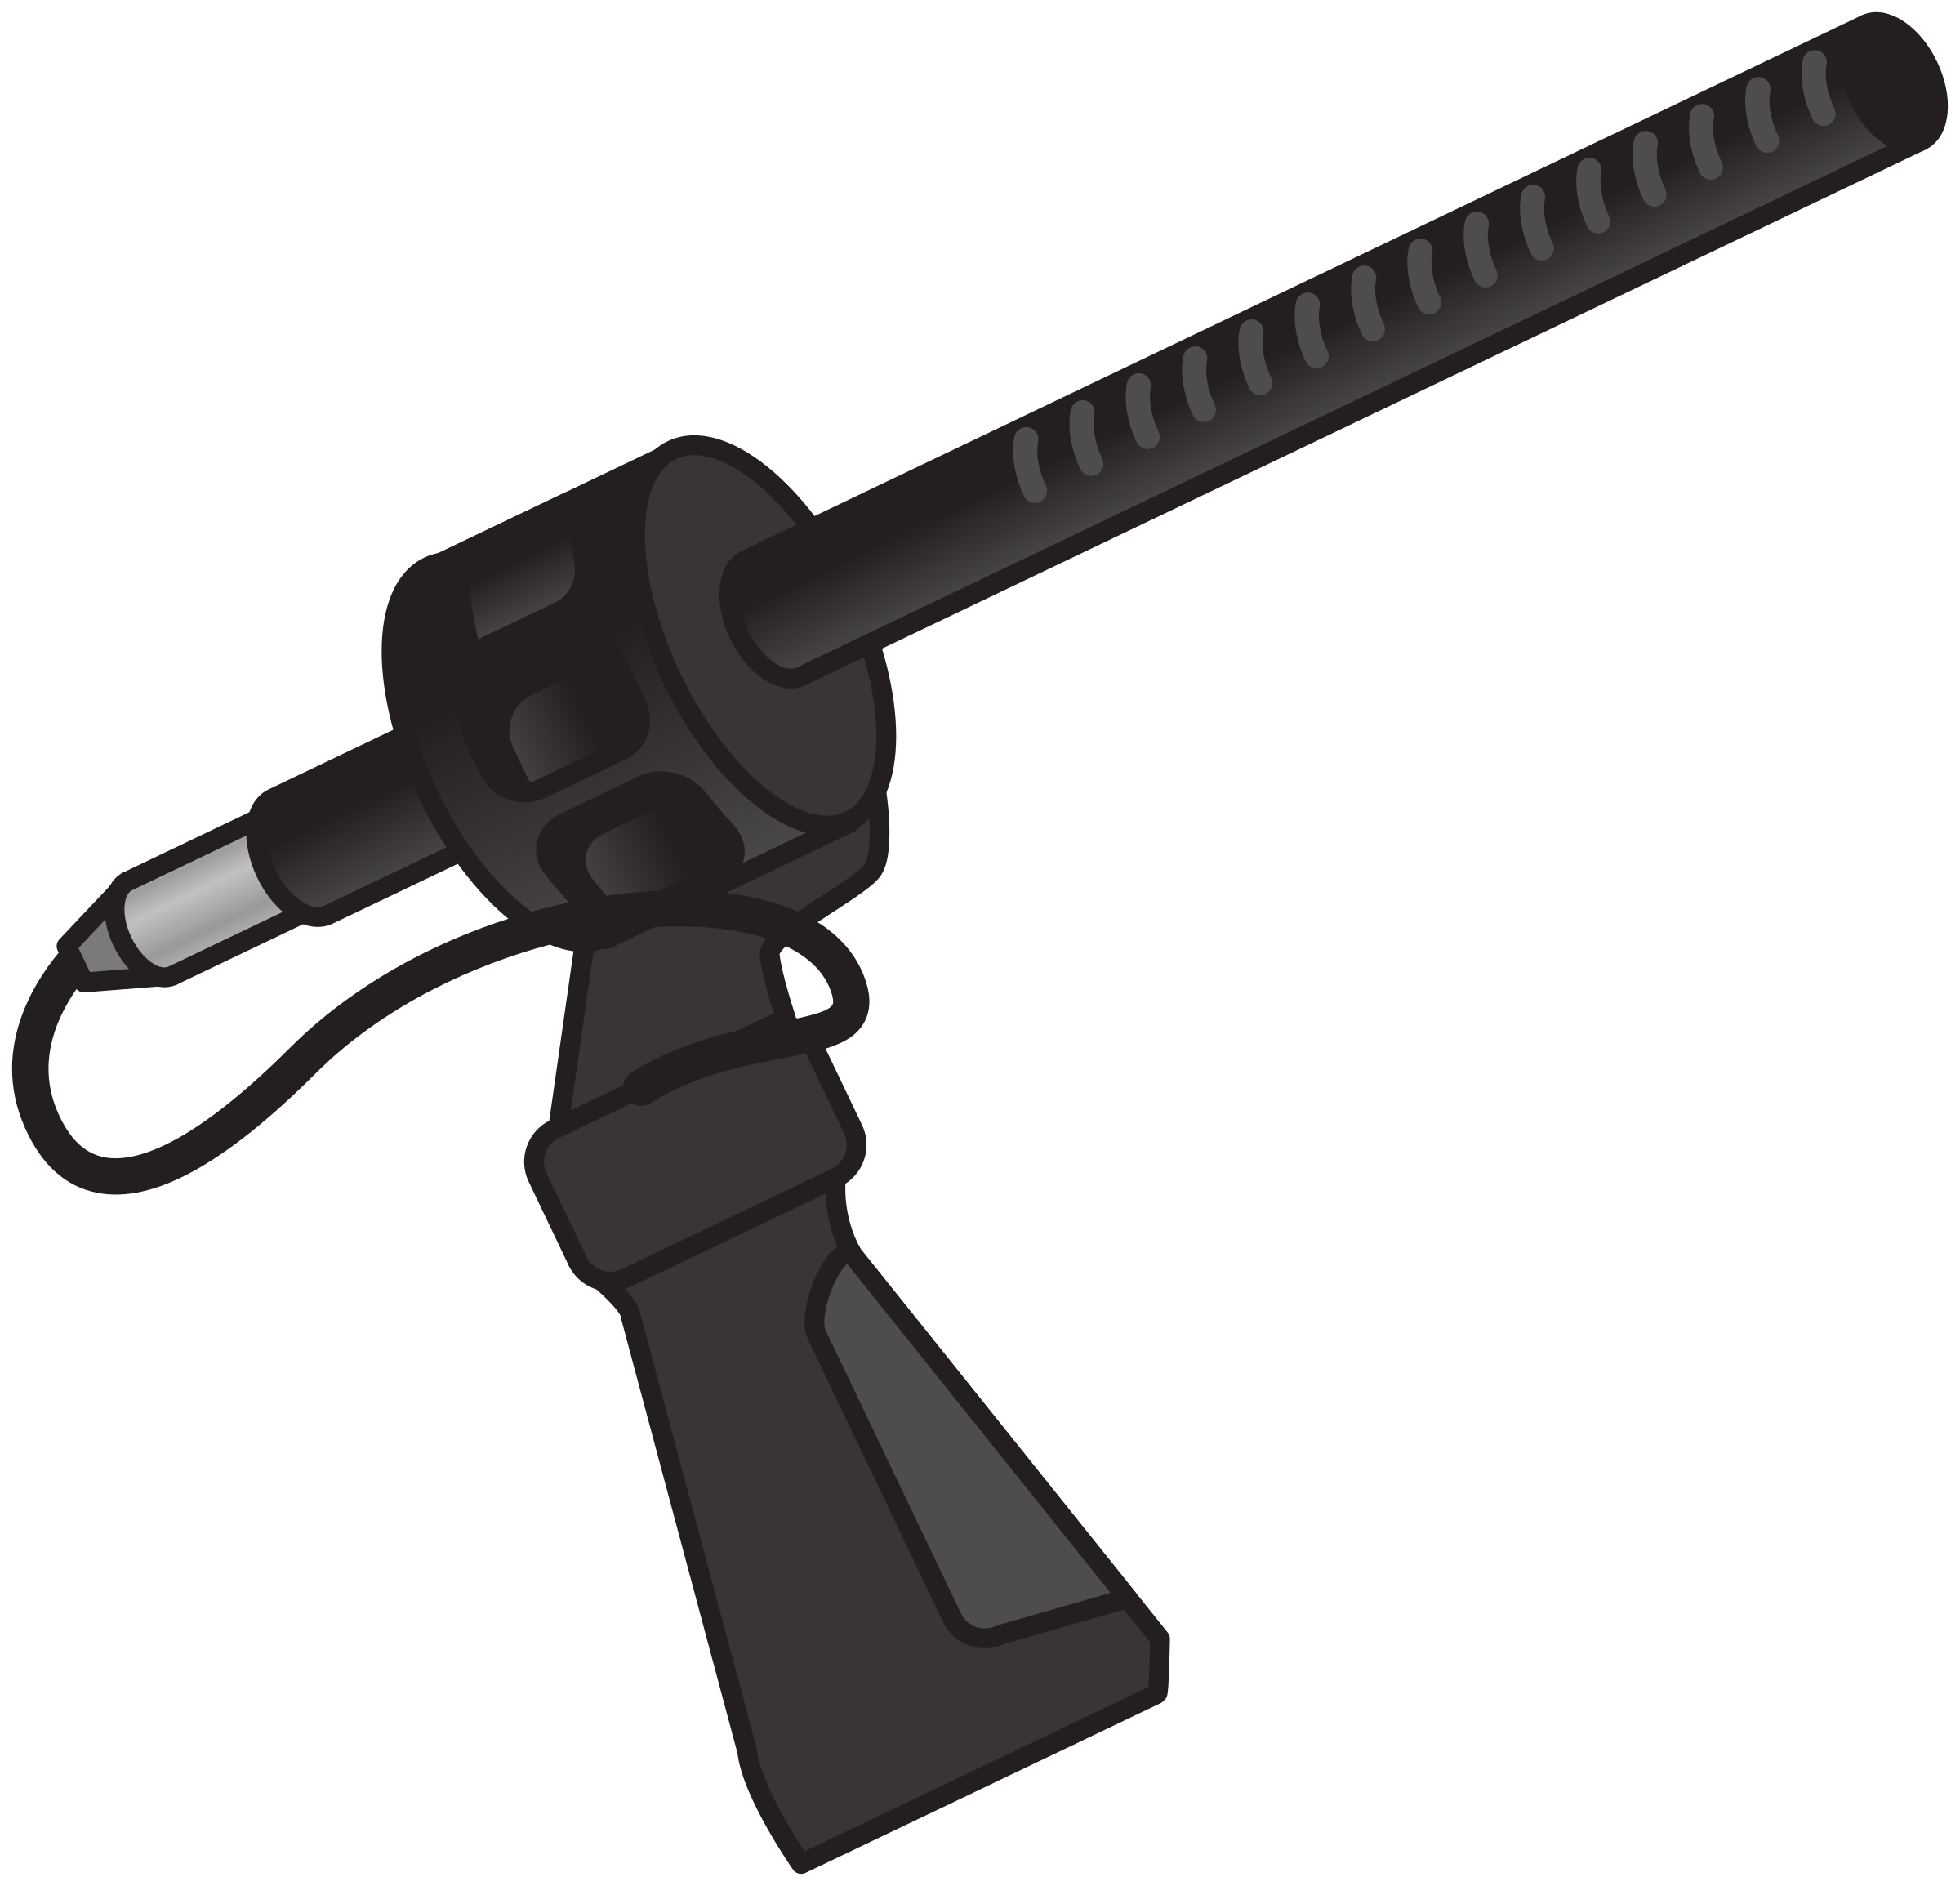 Shotgun icon png. Microphone ver icons free